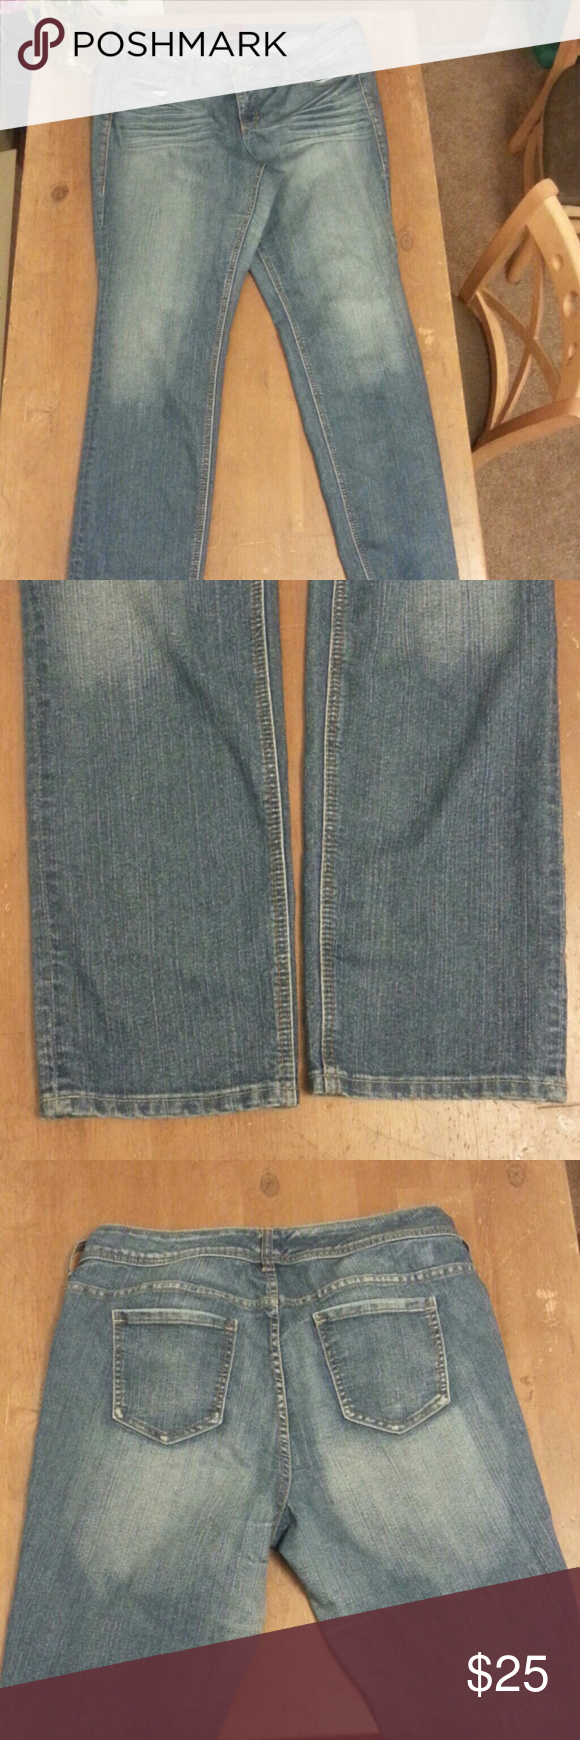 Torrid jeans Medium wash jean with silver hardwear.  Beautiful condition. Comfy and has a little stretch! Torrid Pants Straight Leg